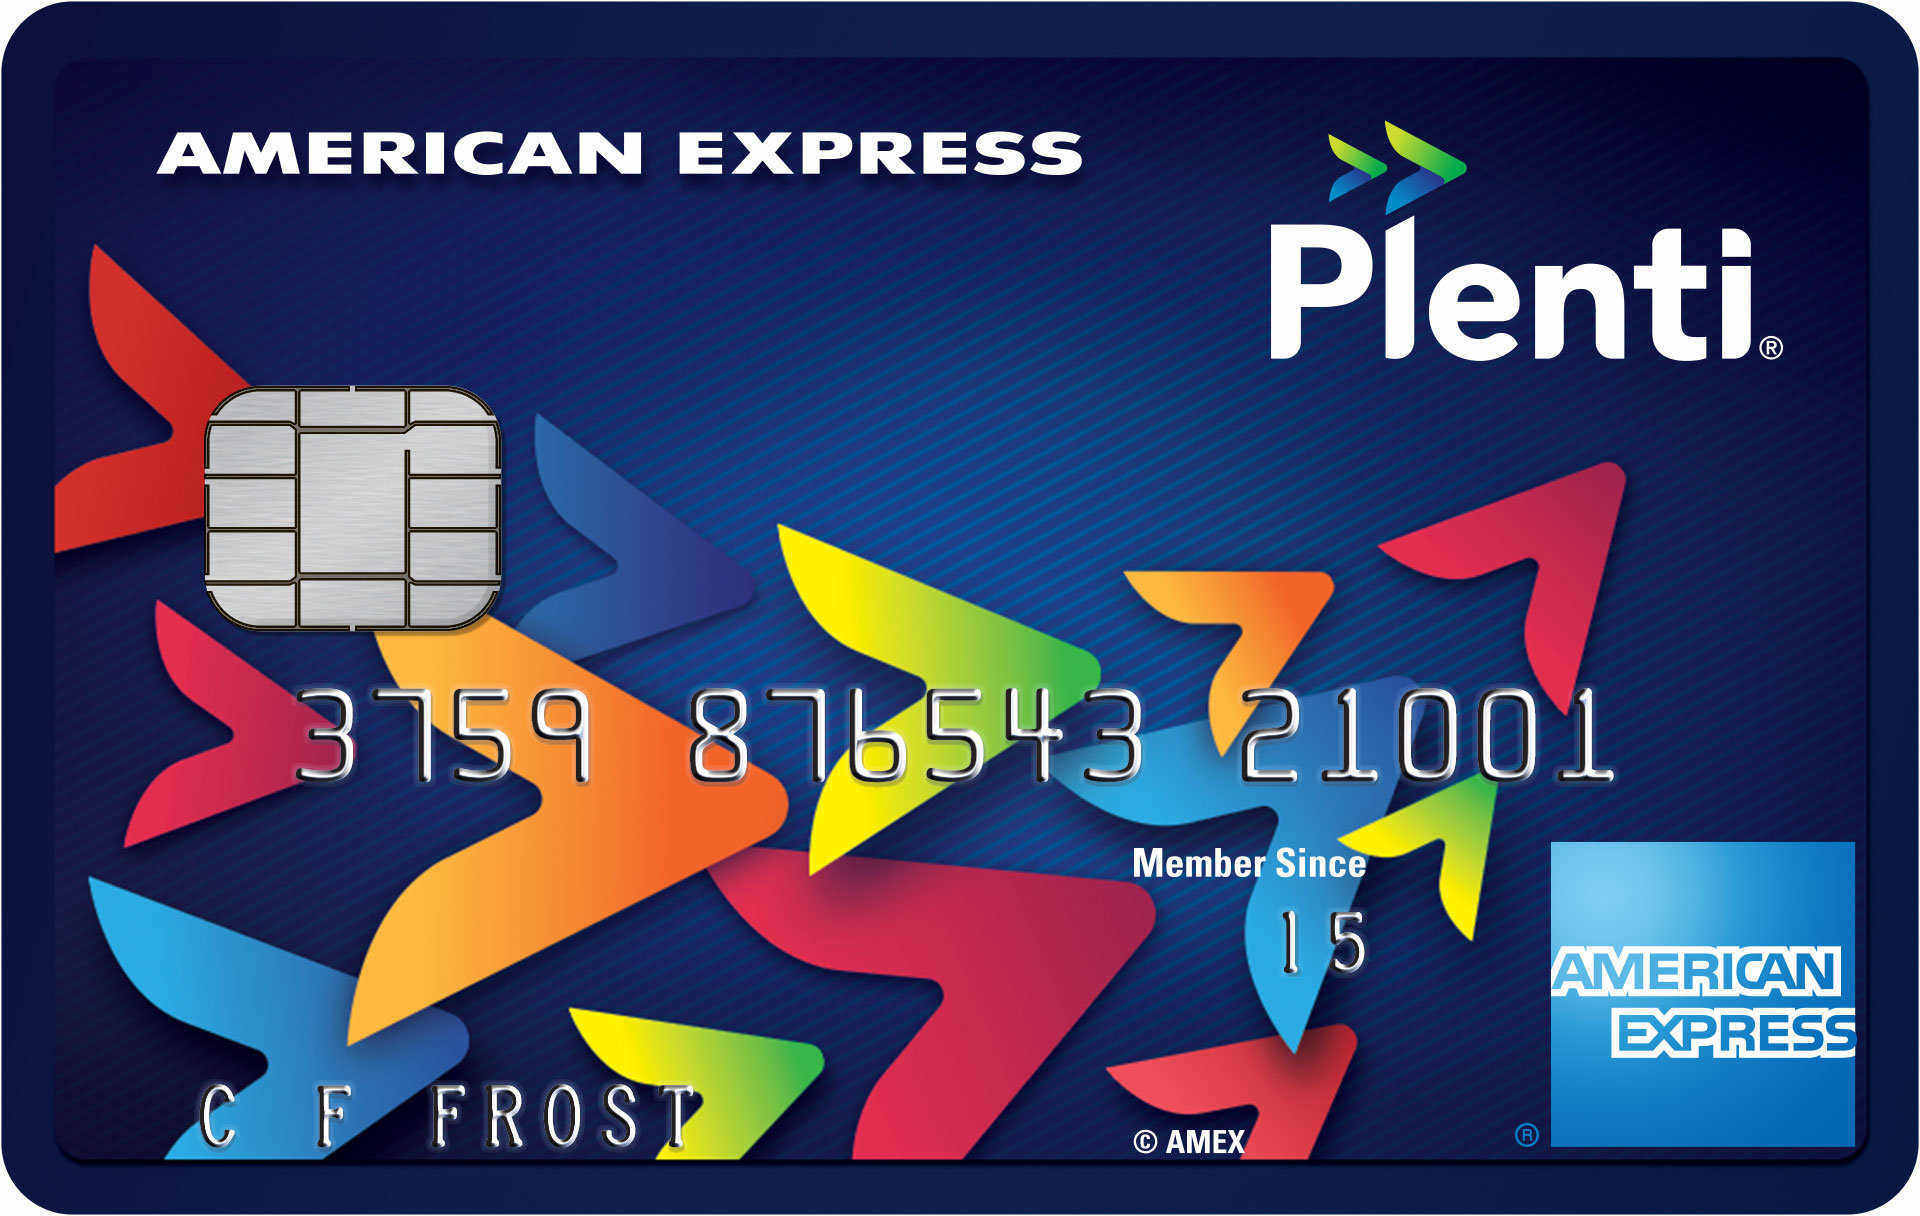 Plenti<sup>SM</sup> Credit Card from Amex Credit Card